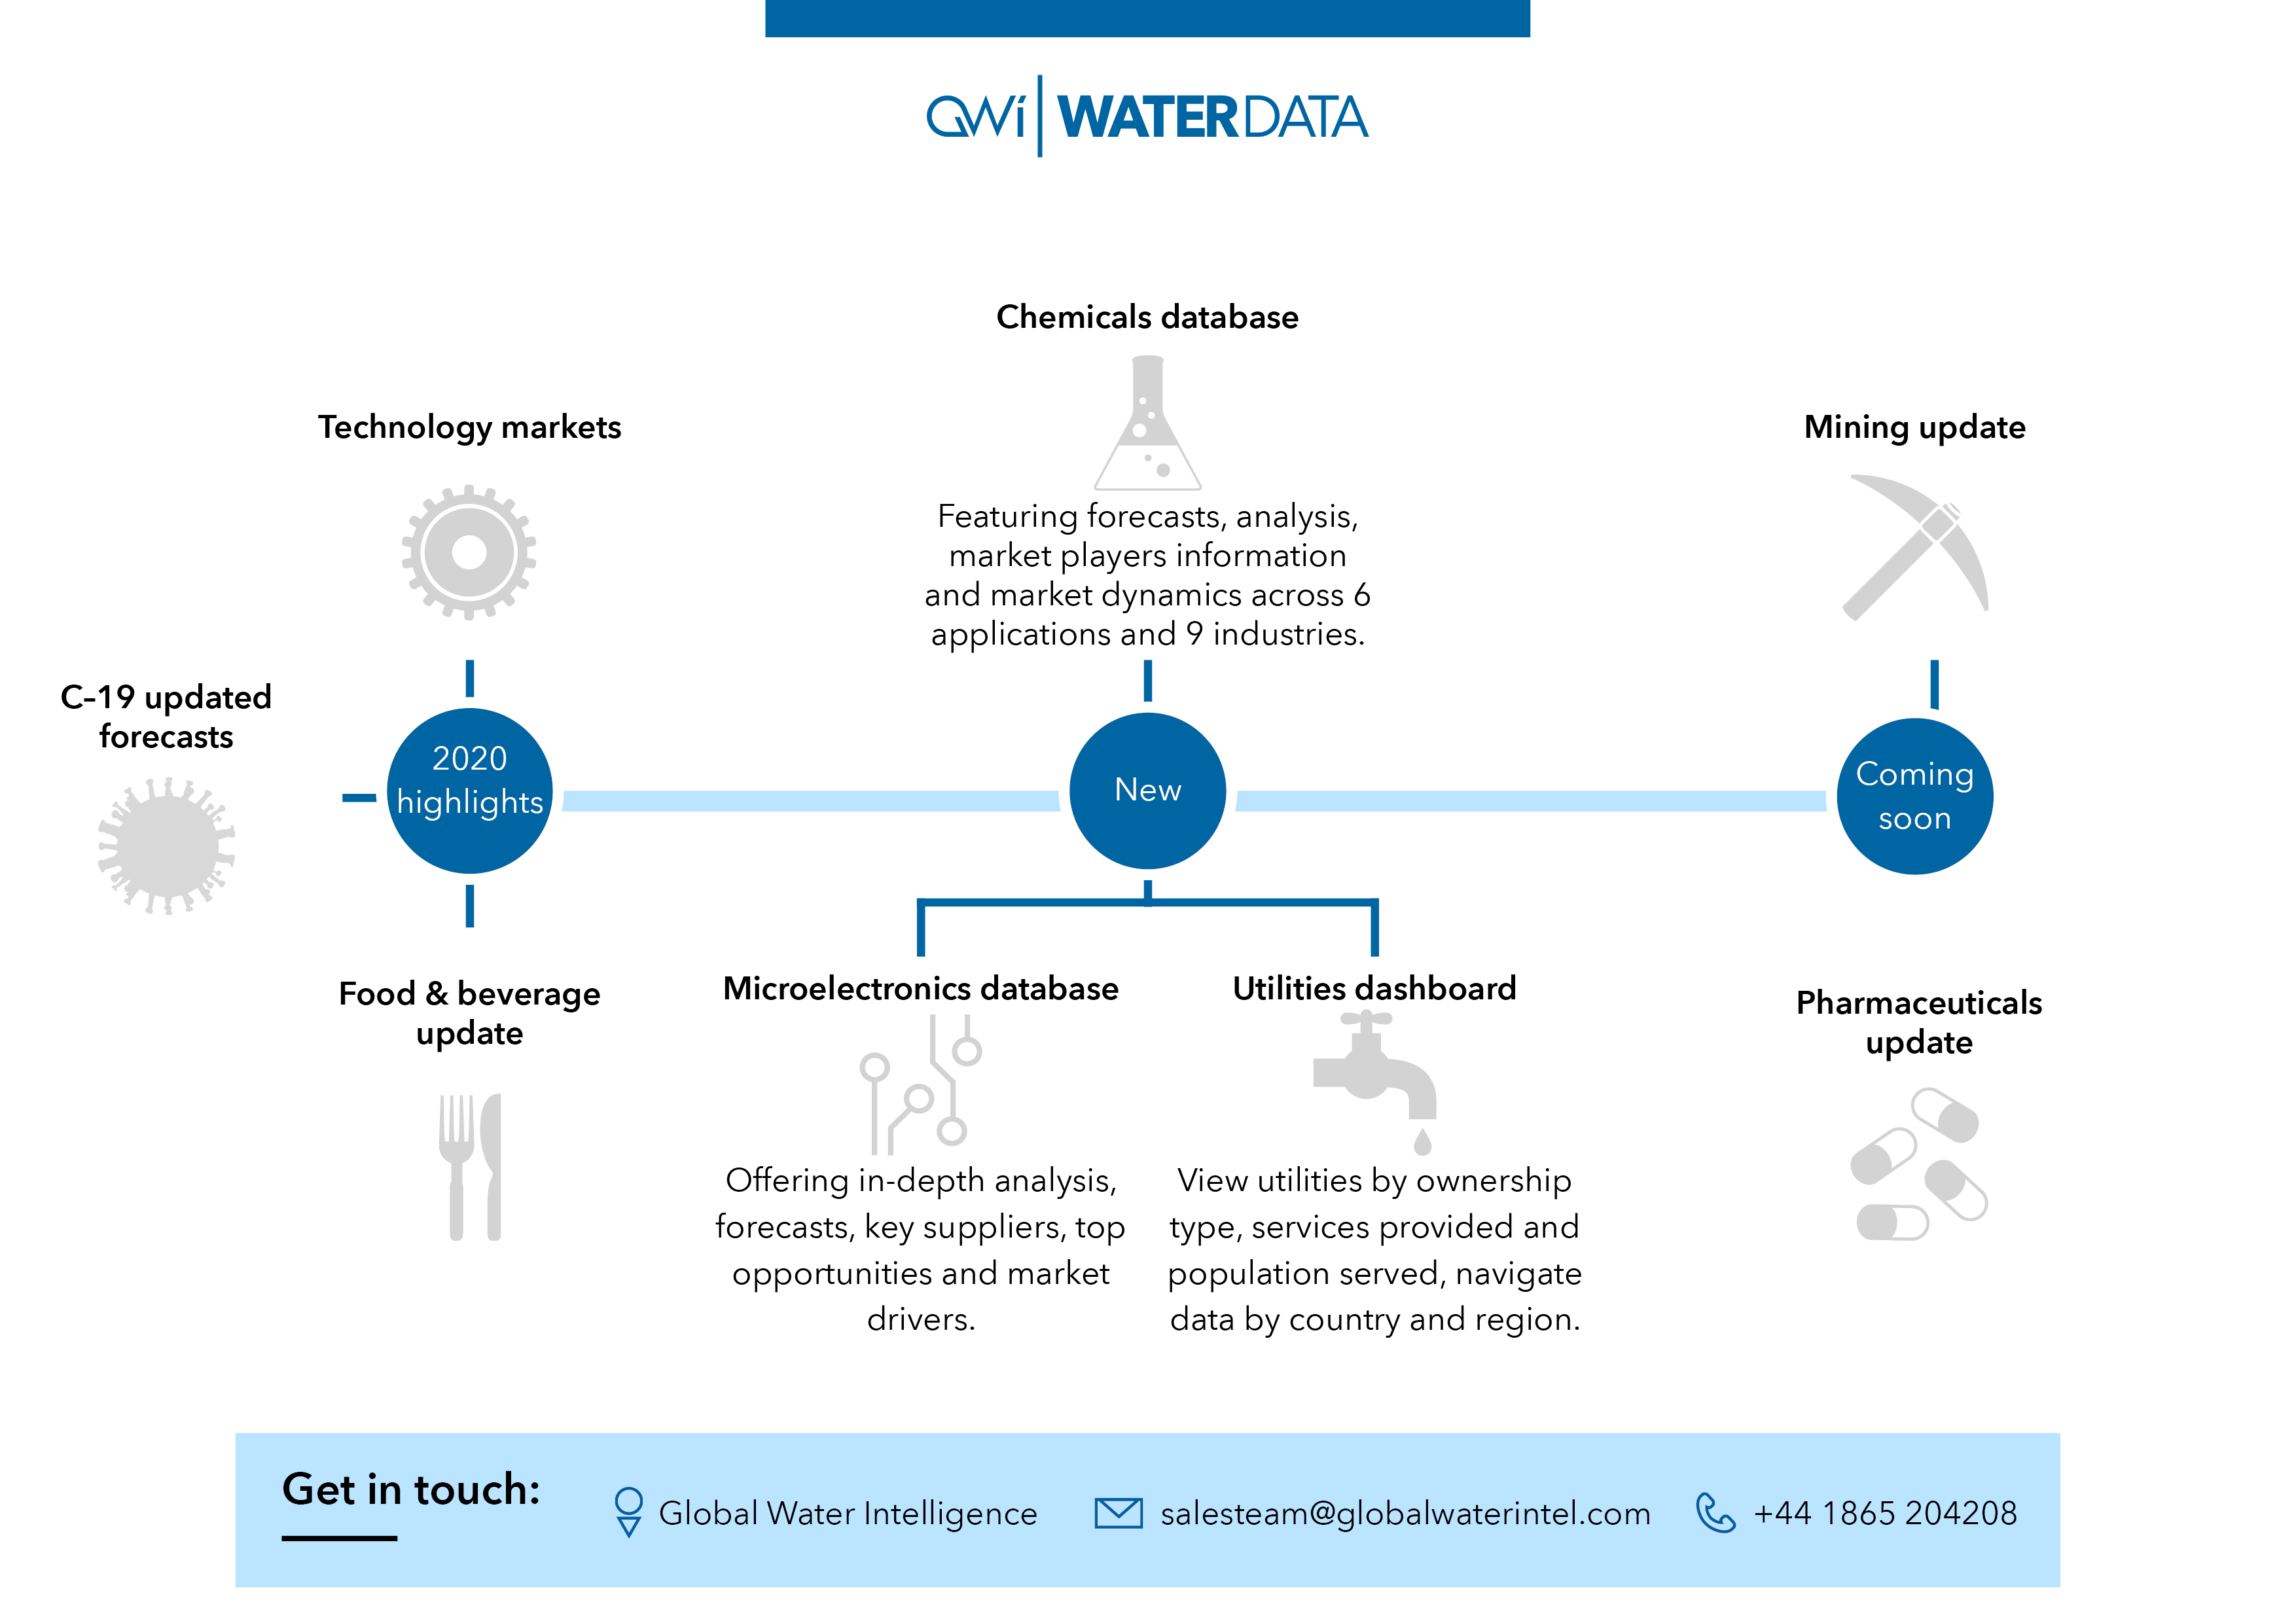 water data updates january 2021